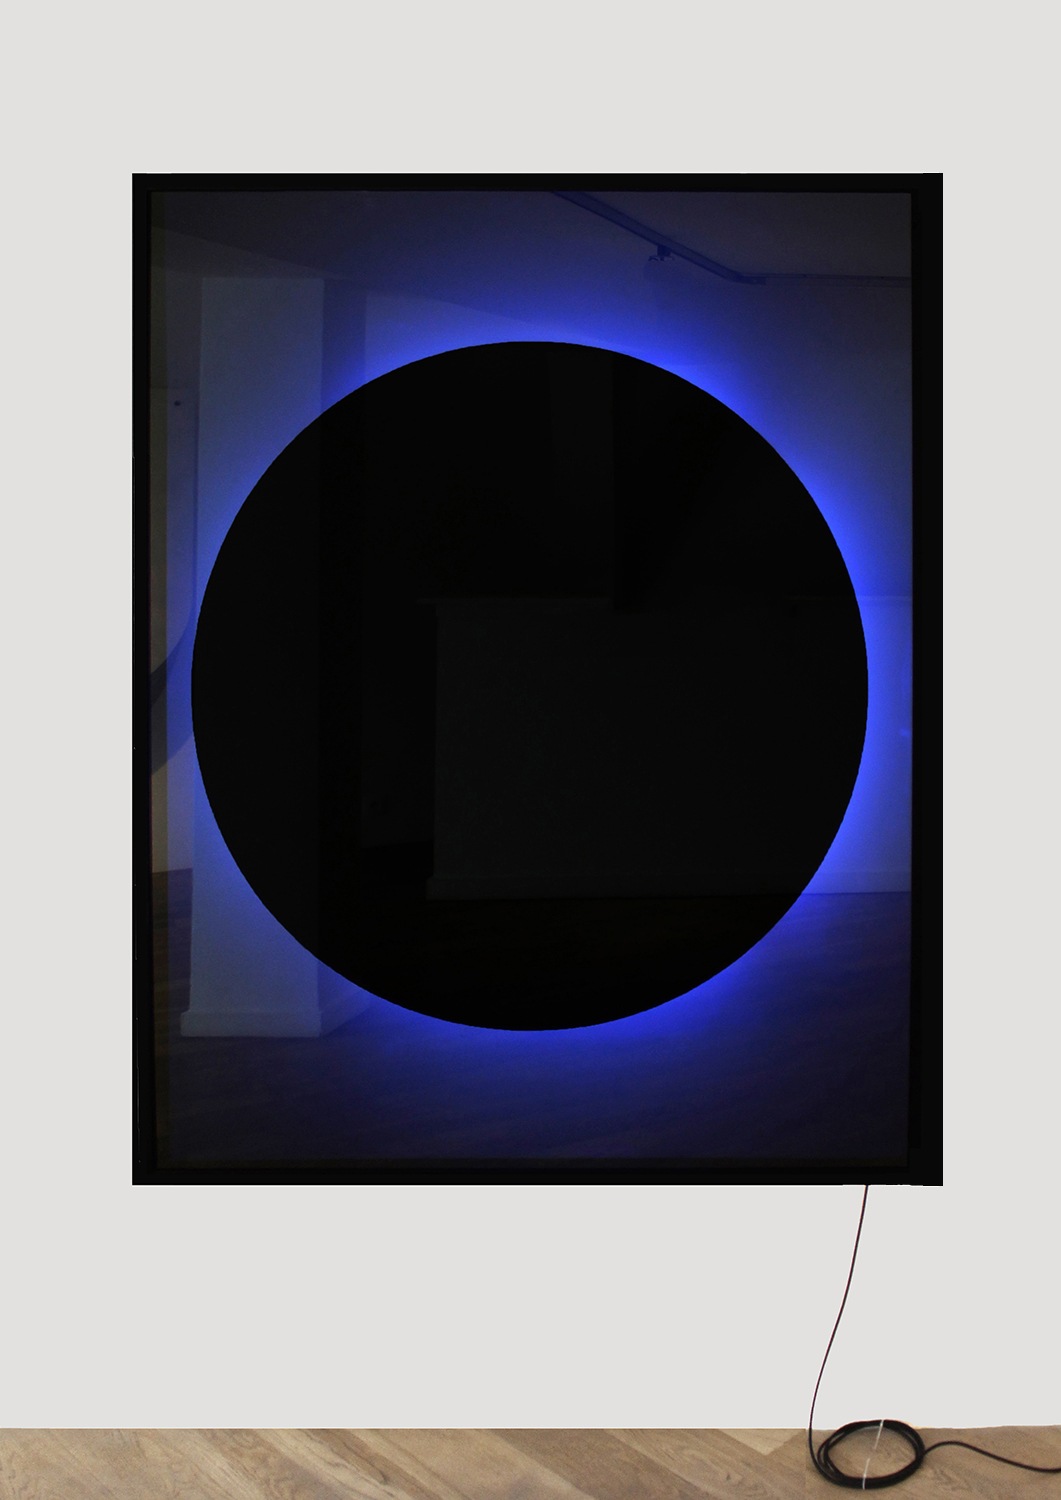 Y hermoso como un eclipse florece al reverso, 2017, one way mirror, led tubes, color filters, adhesive vinyl, aluminium, paint, 150 x 120 x 10 cm